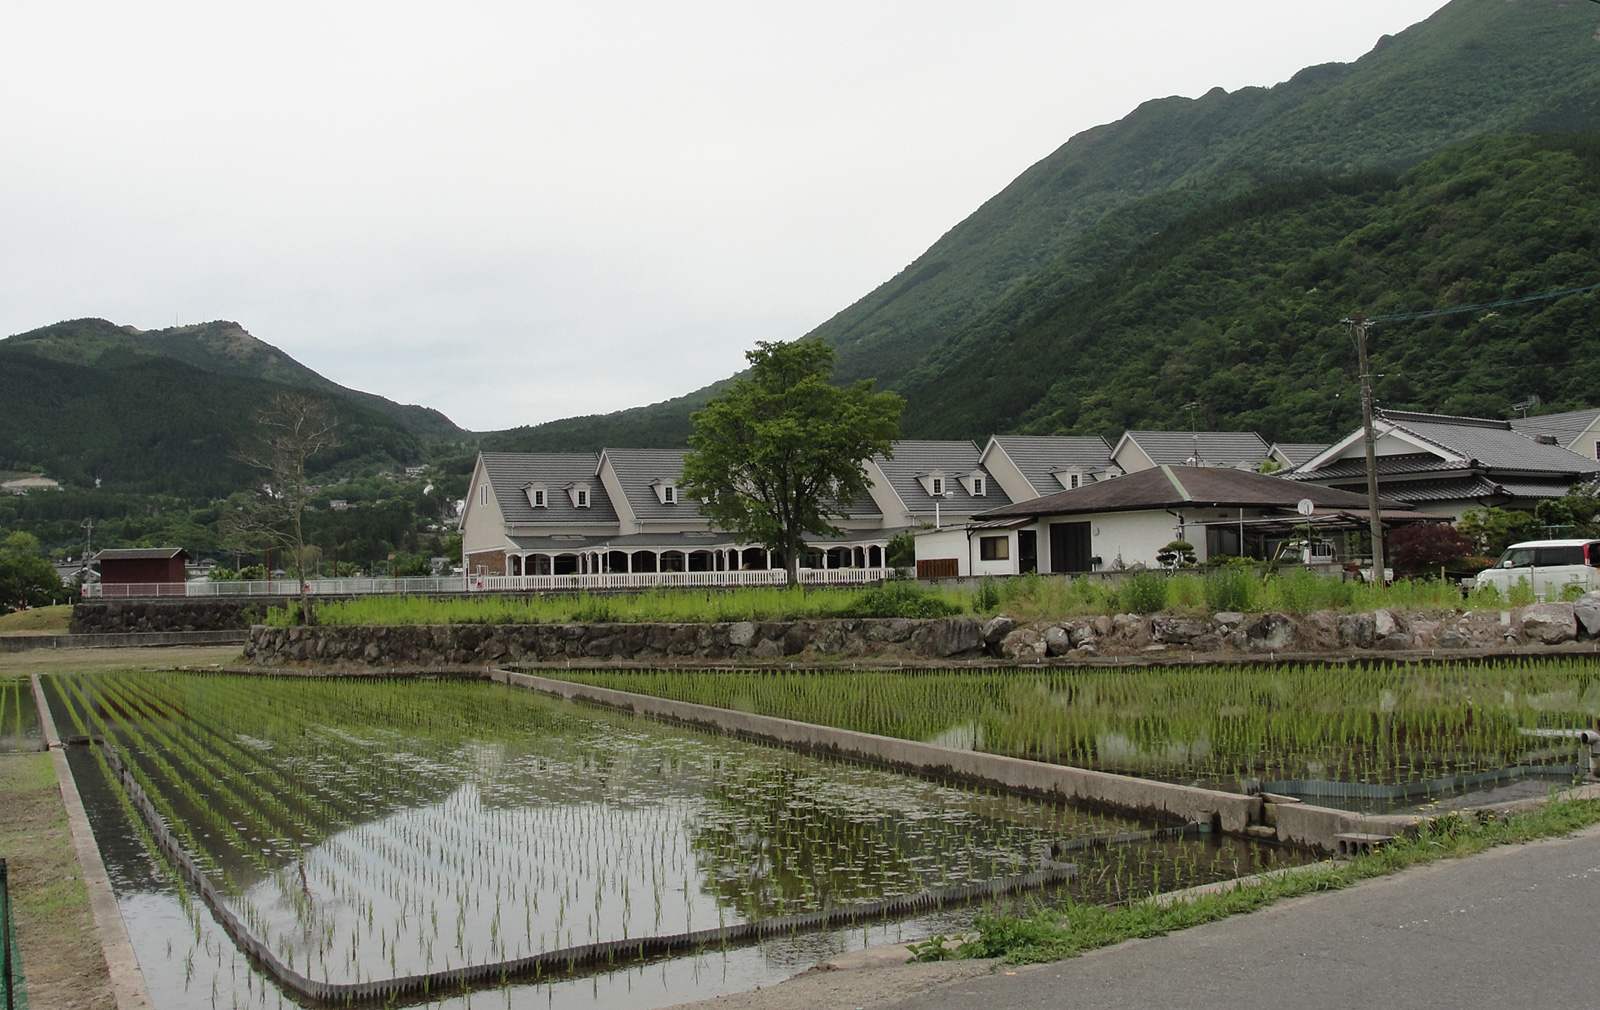 """Yufuin is famous for its natural hot springs, and for its mountain surrounds. Photography: <a href=""""https://www.flickr.com/photos/bagelmouse/"""" target=""""_blank"""">RachelH_</a>"""